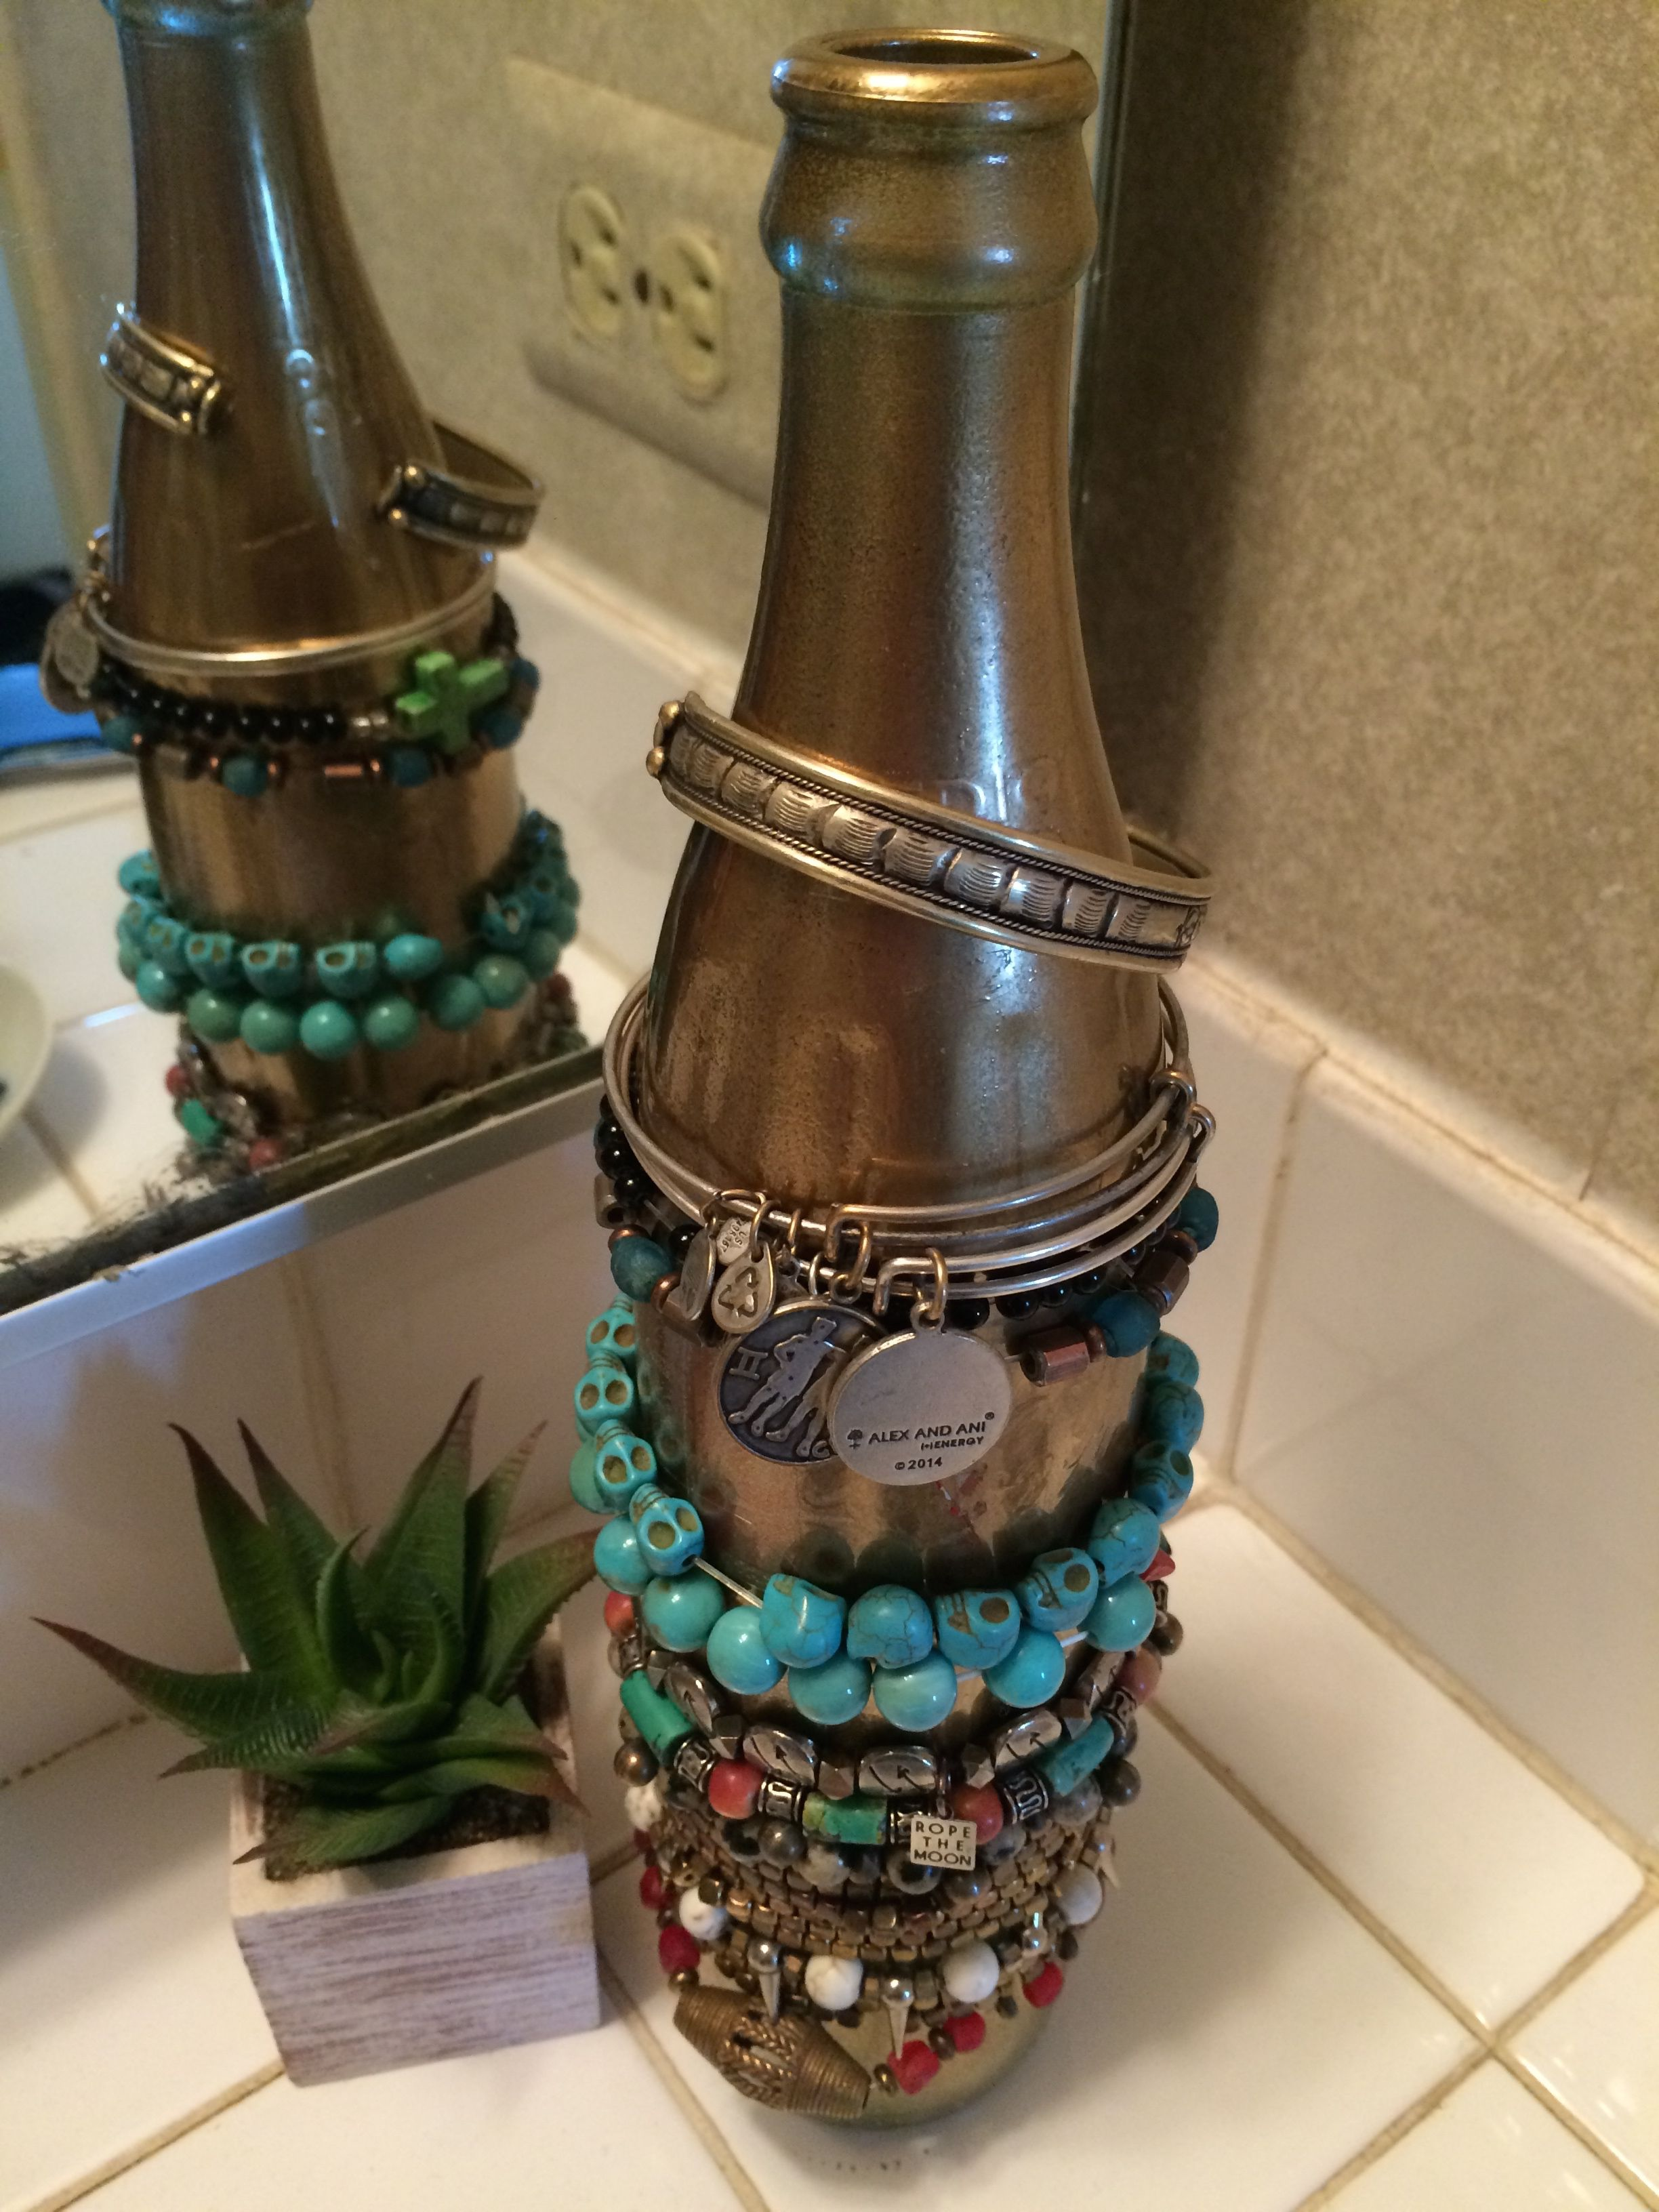 BOHO Chic Bracelet Bottle // This fabulous decorative Bracelet Bottle holder is one of my favorite DIY projects yet! This DIY bottle is perfect for organizing and holding your bracelets or hair ties in your bathroom, on a counter or anywhere in your  Read More →